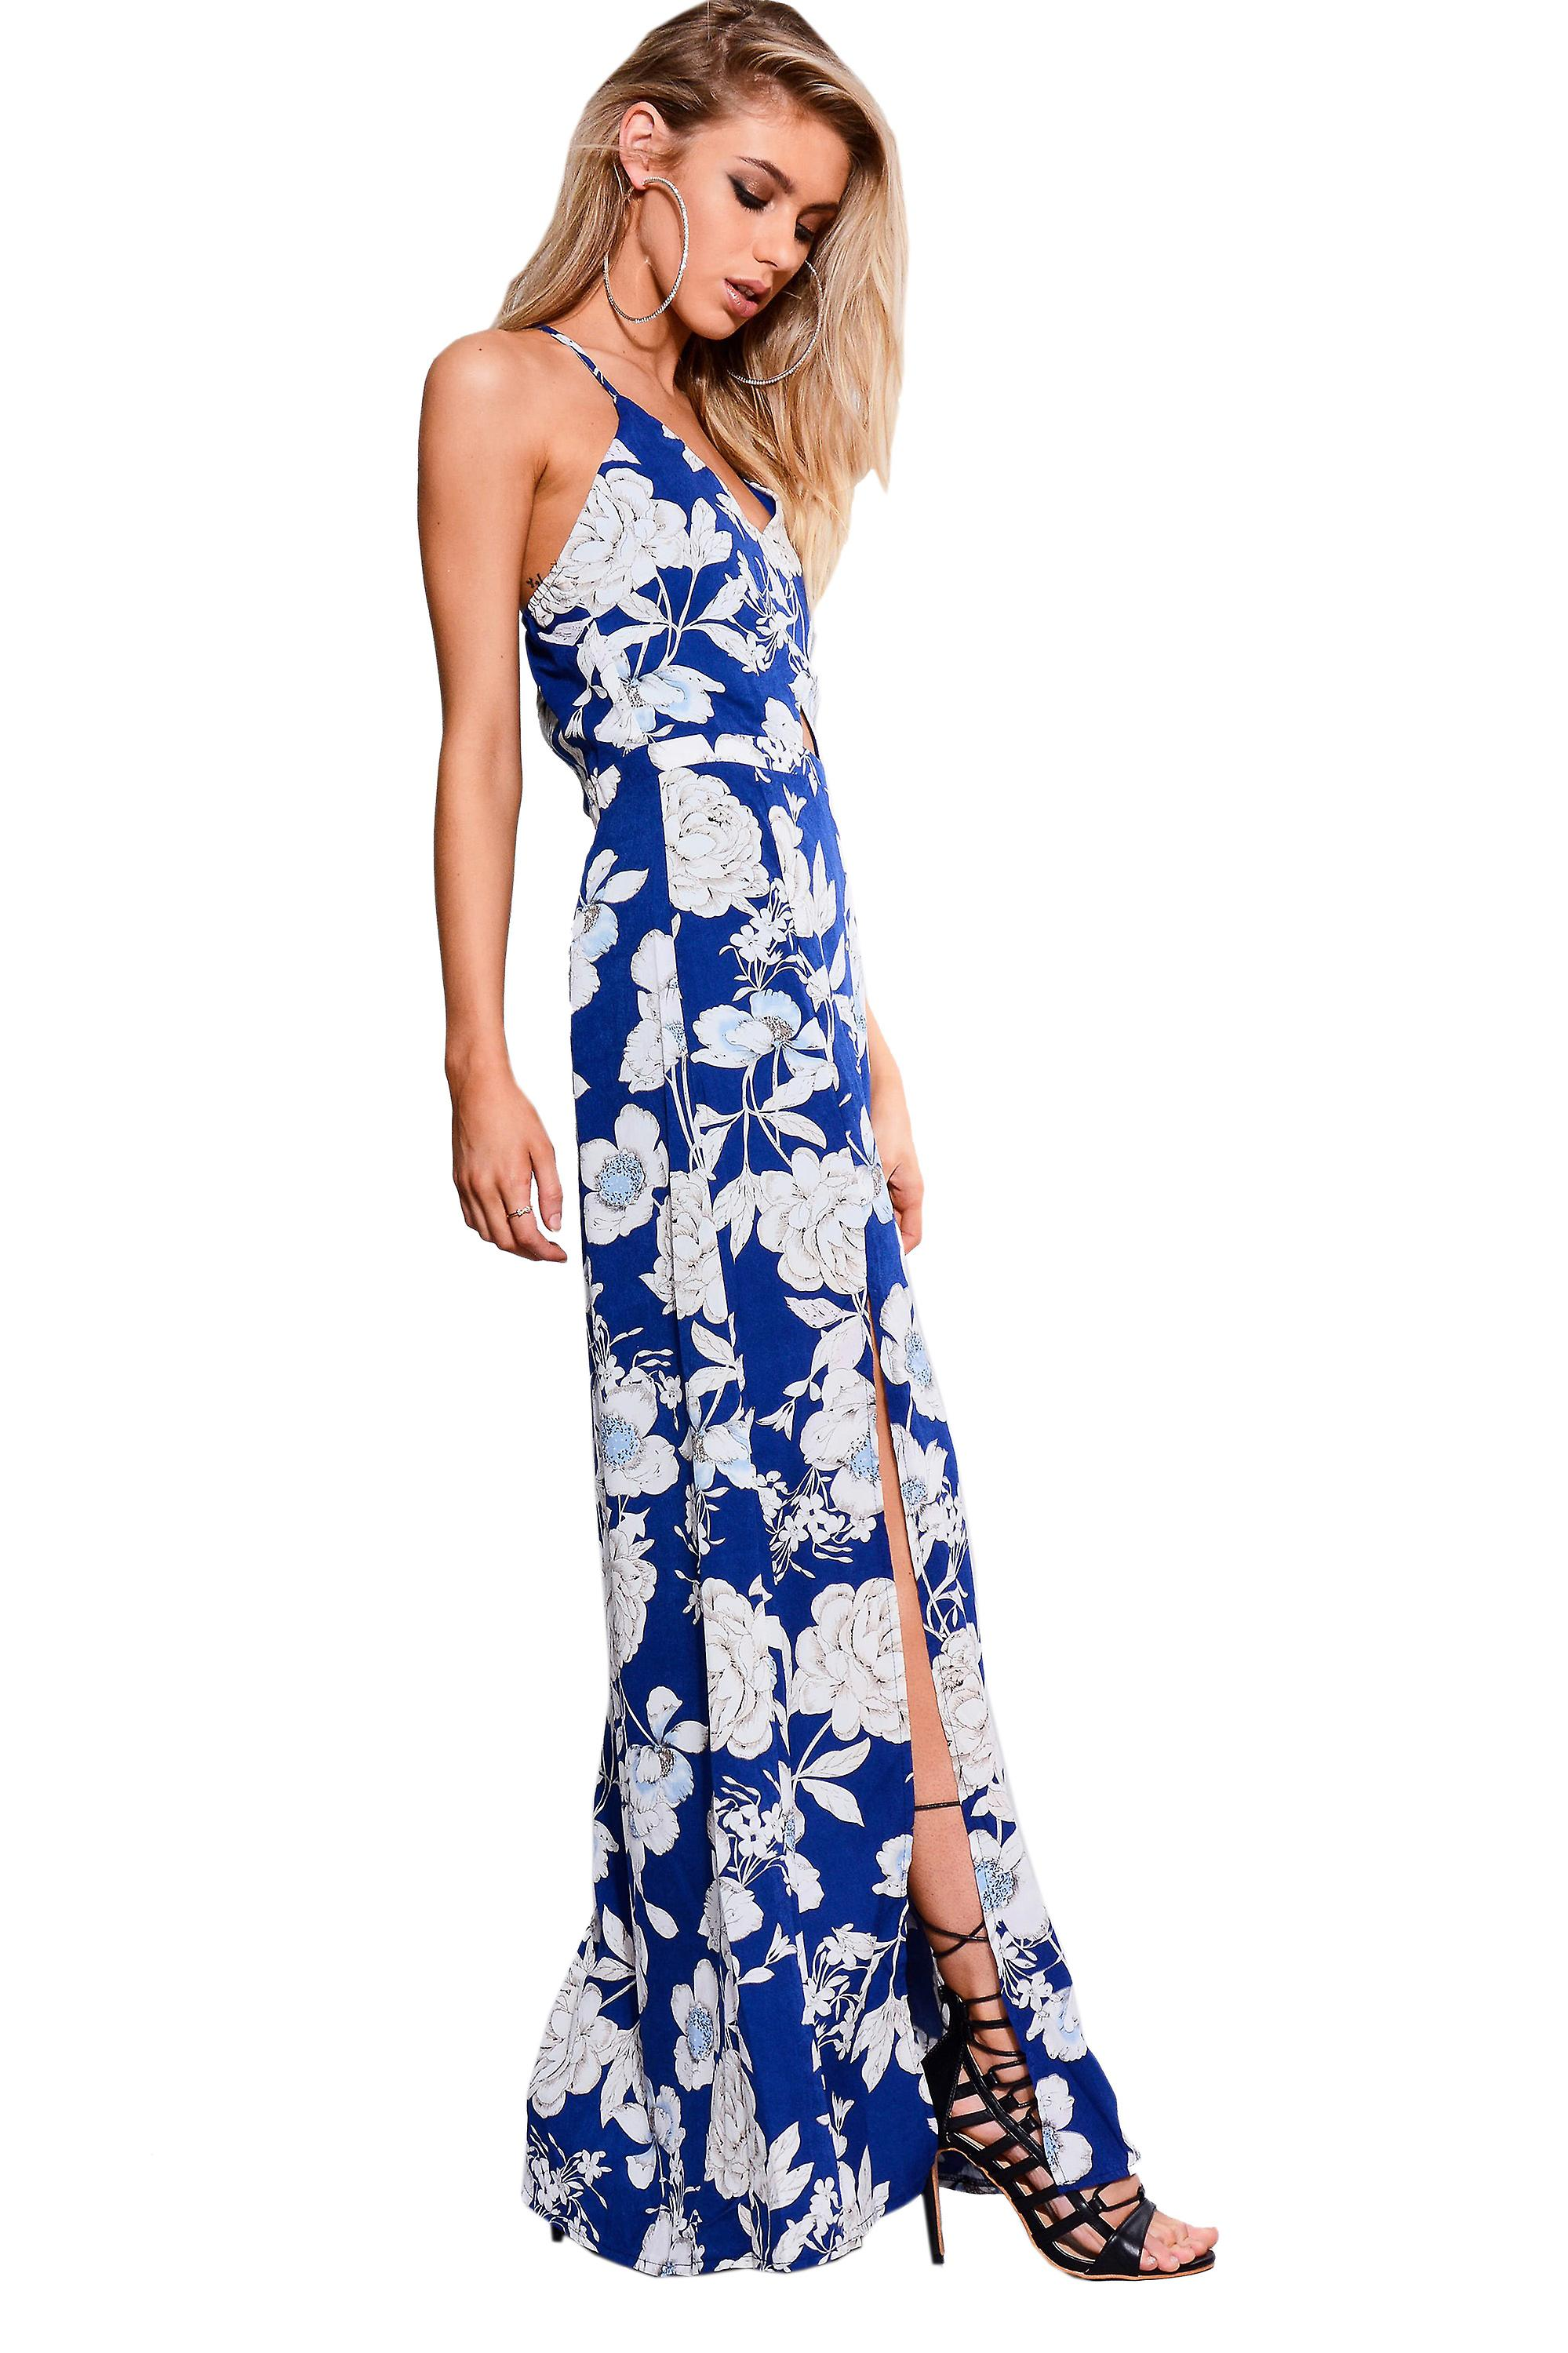 Parisian Blue Floral Maxi Summer Dress With Cut Out Detail